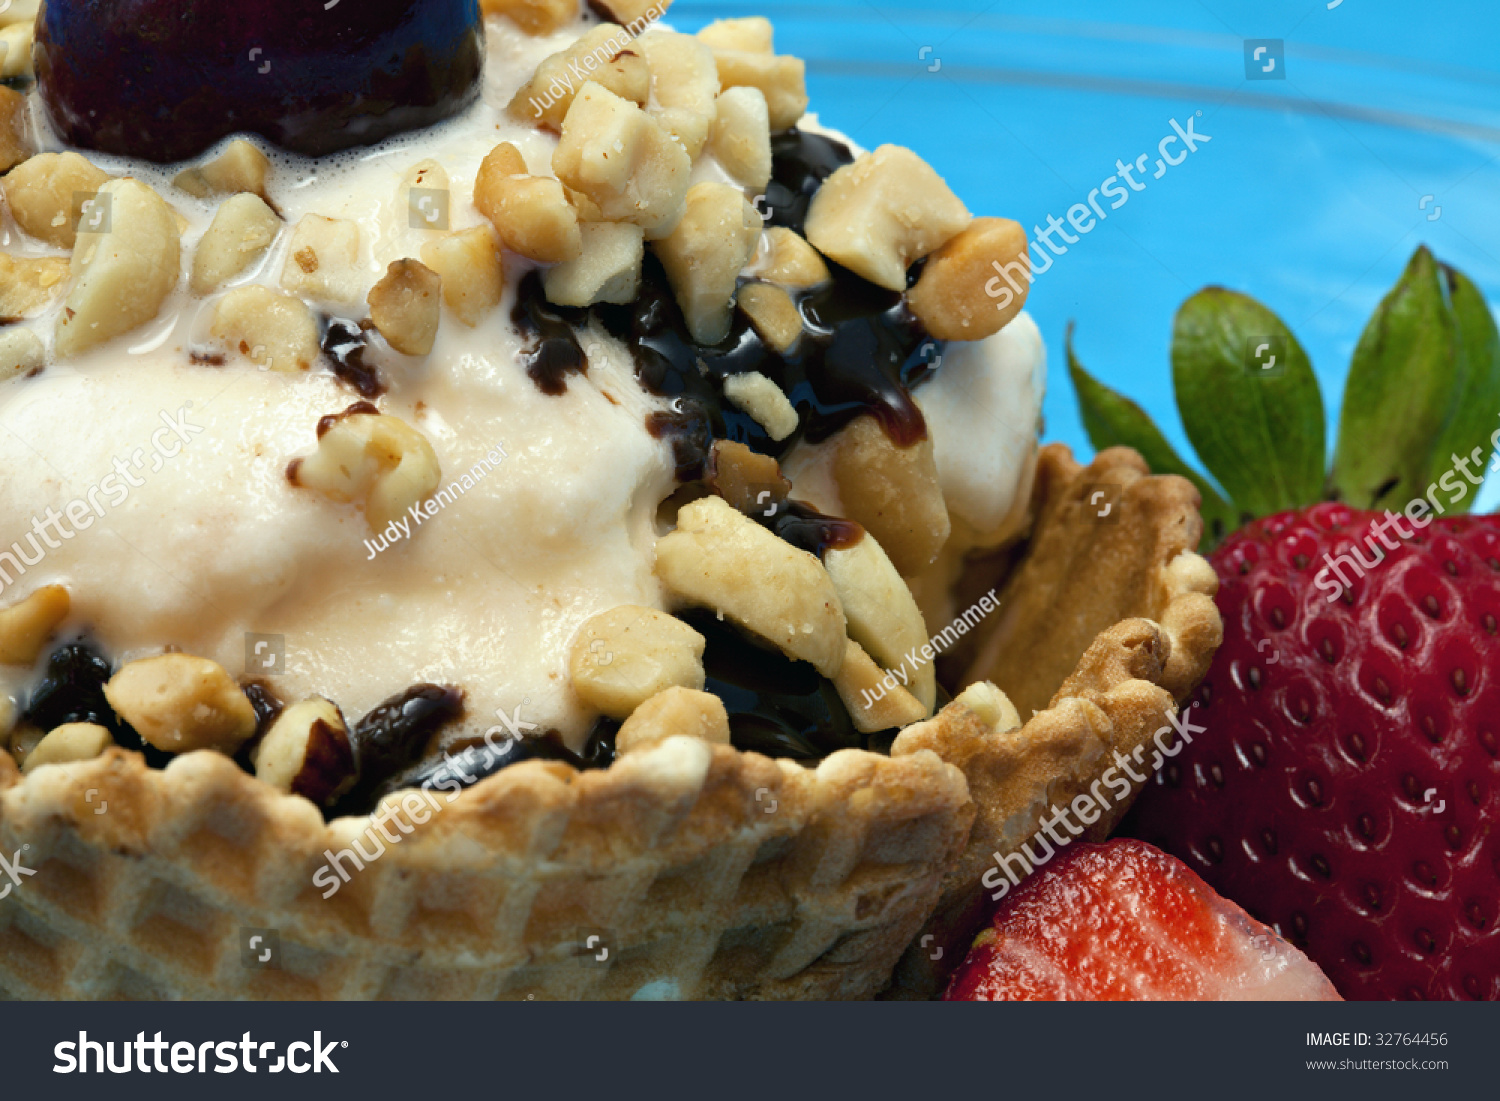 Close Up Of Vanilla Ice Cream Sundae In An Edible Waffle ... Vanilla Ice Cream In A Bowl With Chocolate Syrup